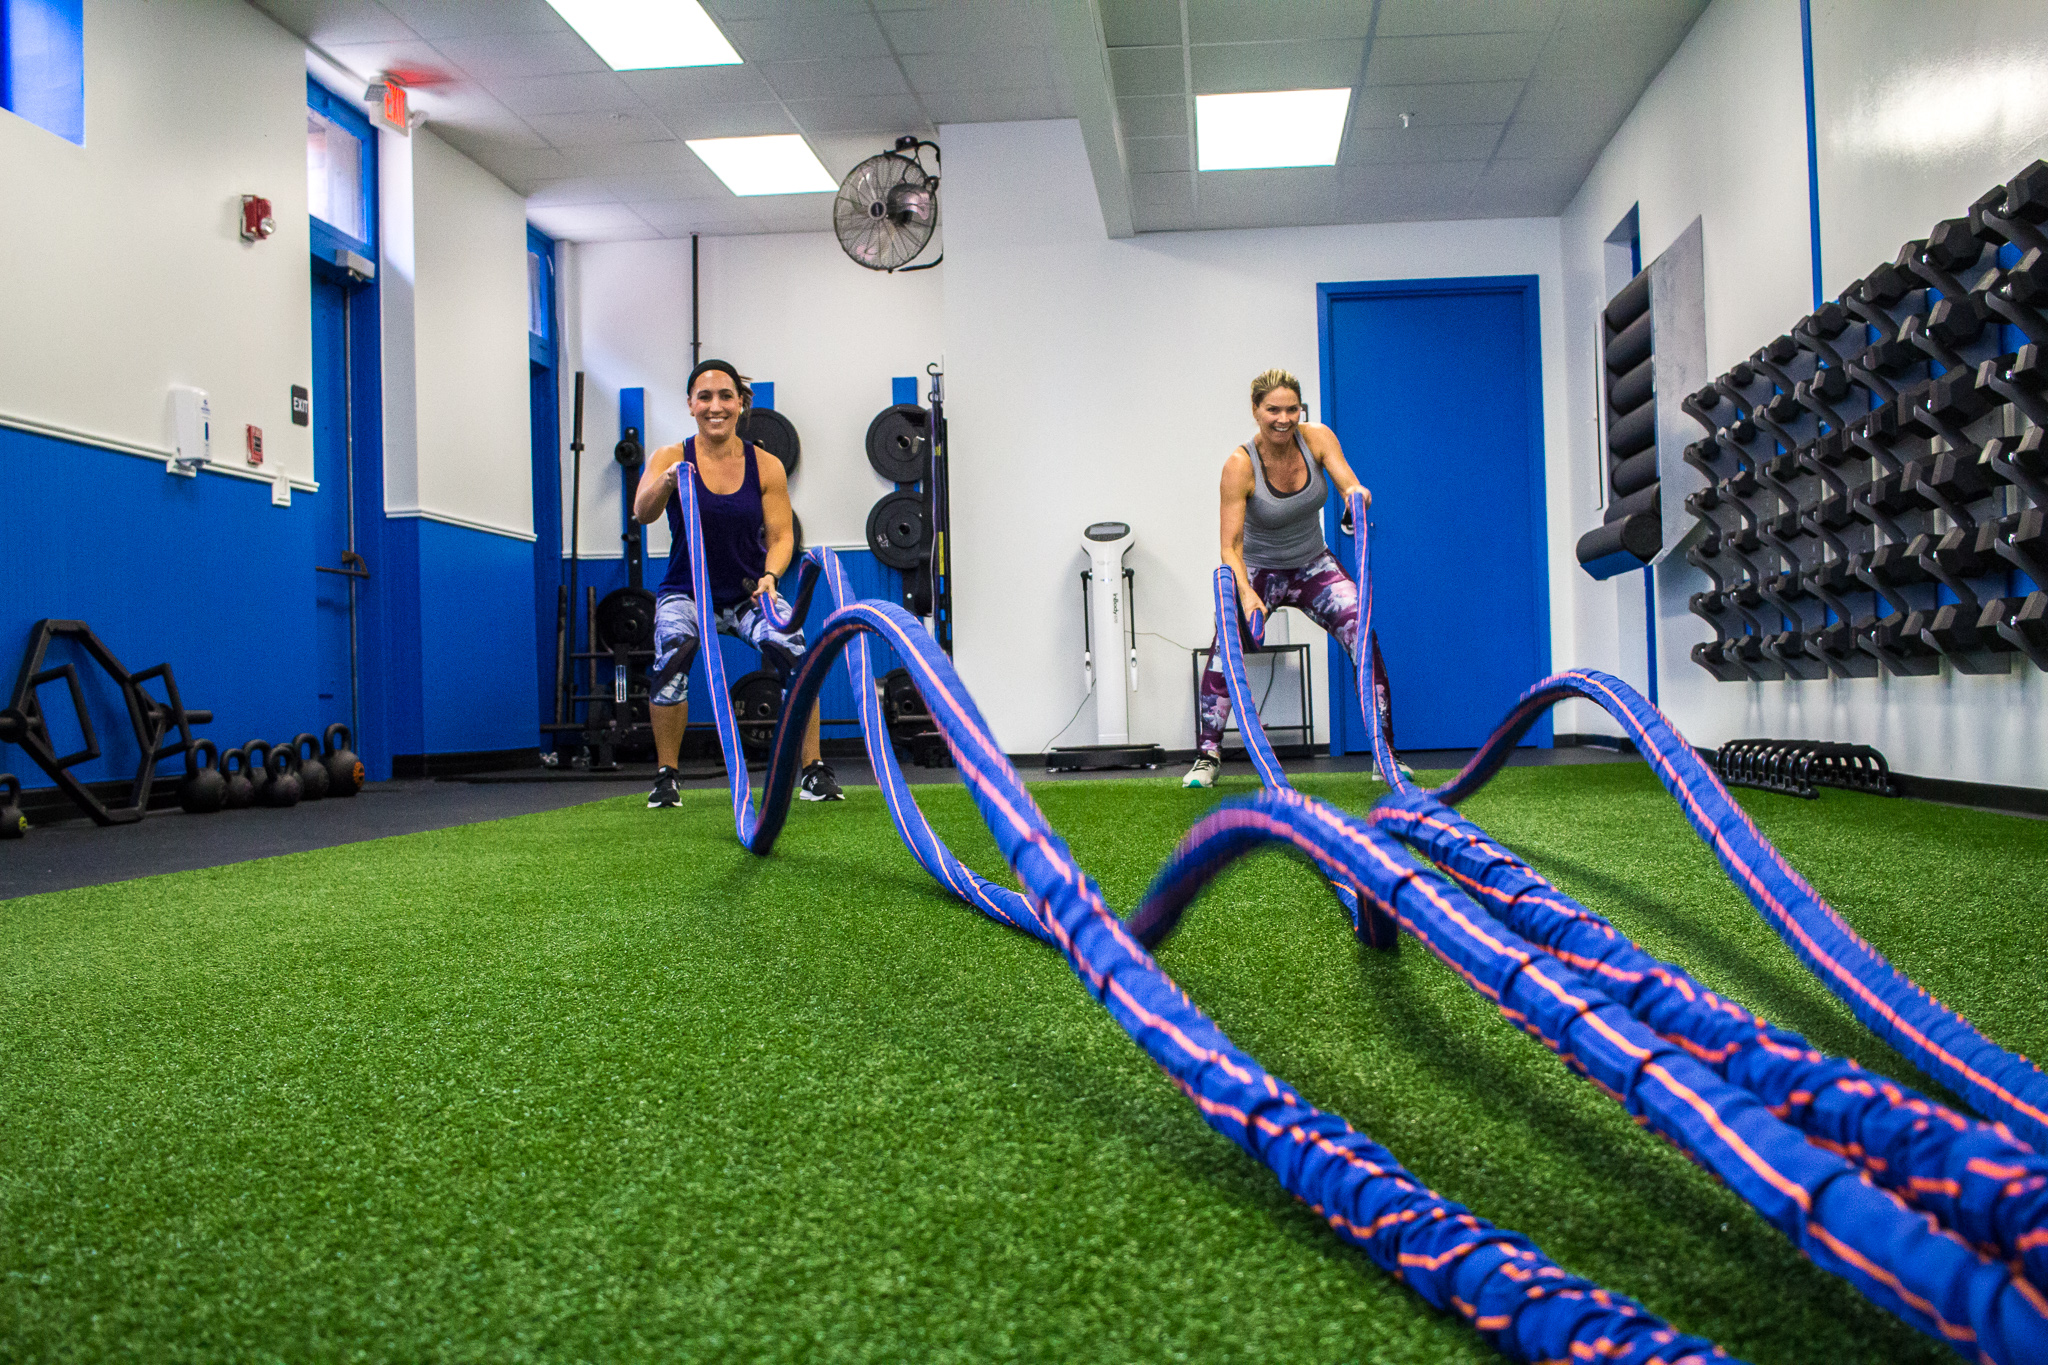 Semi-Private Training - Much like personal training, semi-private training provides individuals with personalized fitness routines. SPT best suits those with specific goals and or restrictions. We will build a custom routine to help you achieve your goals. SPT is great for everyone from beginner to advanced.